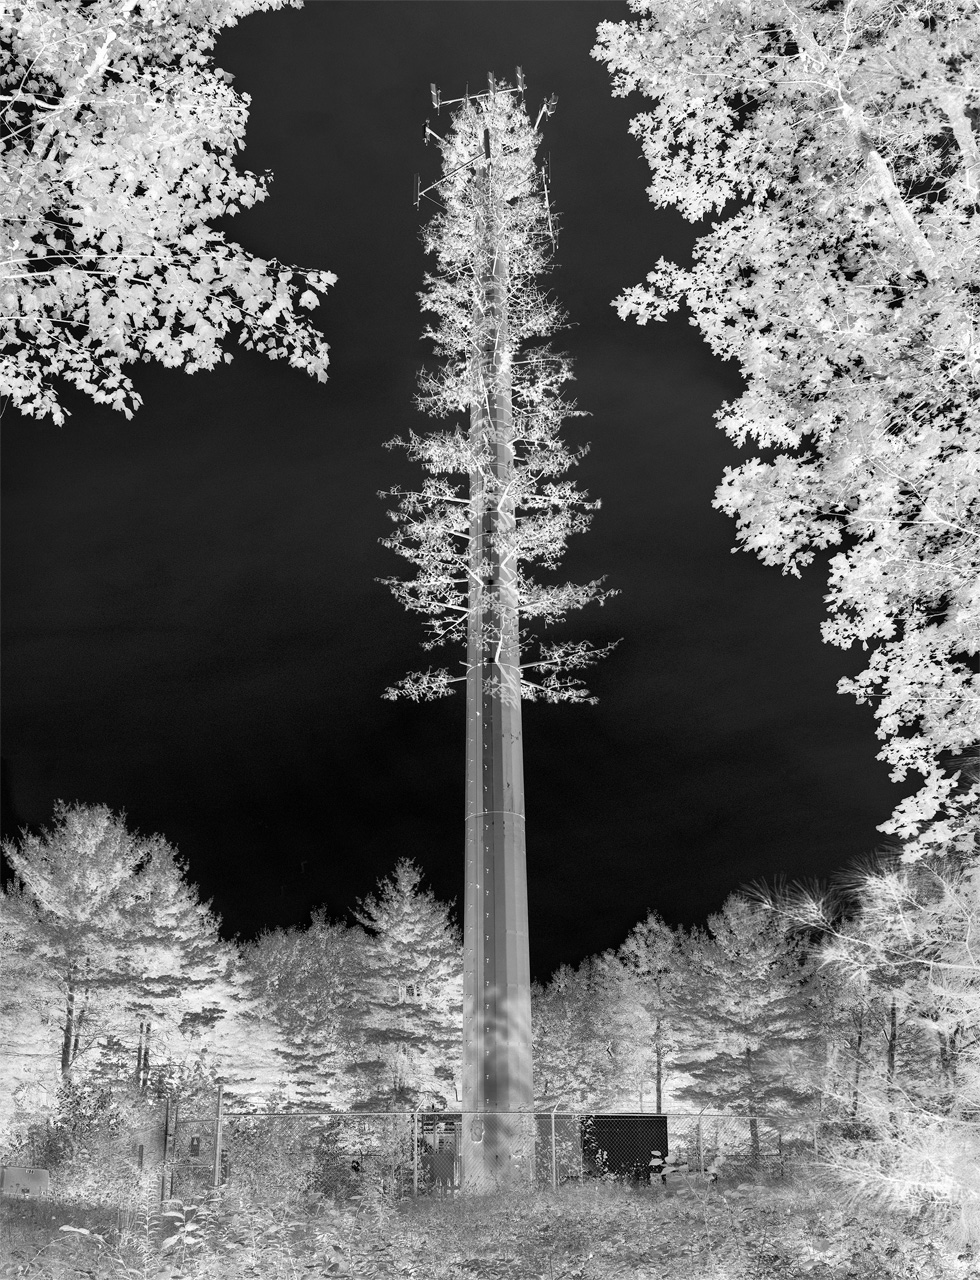 Fake-Tree-Tower-NY-flat-2012.jpg